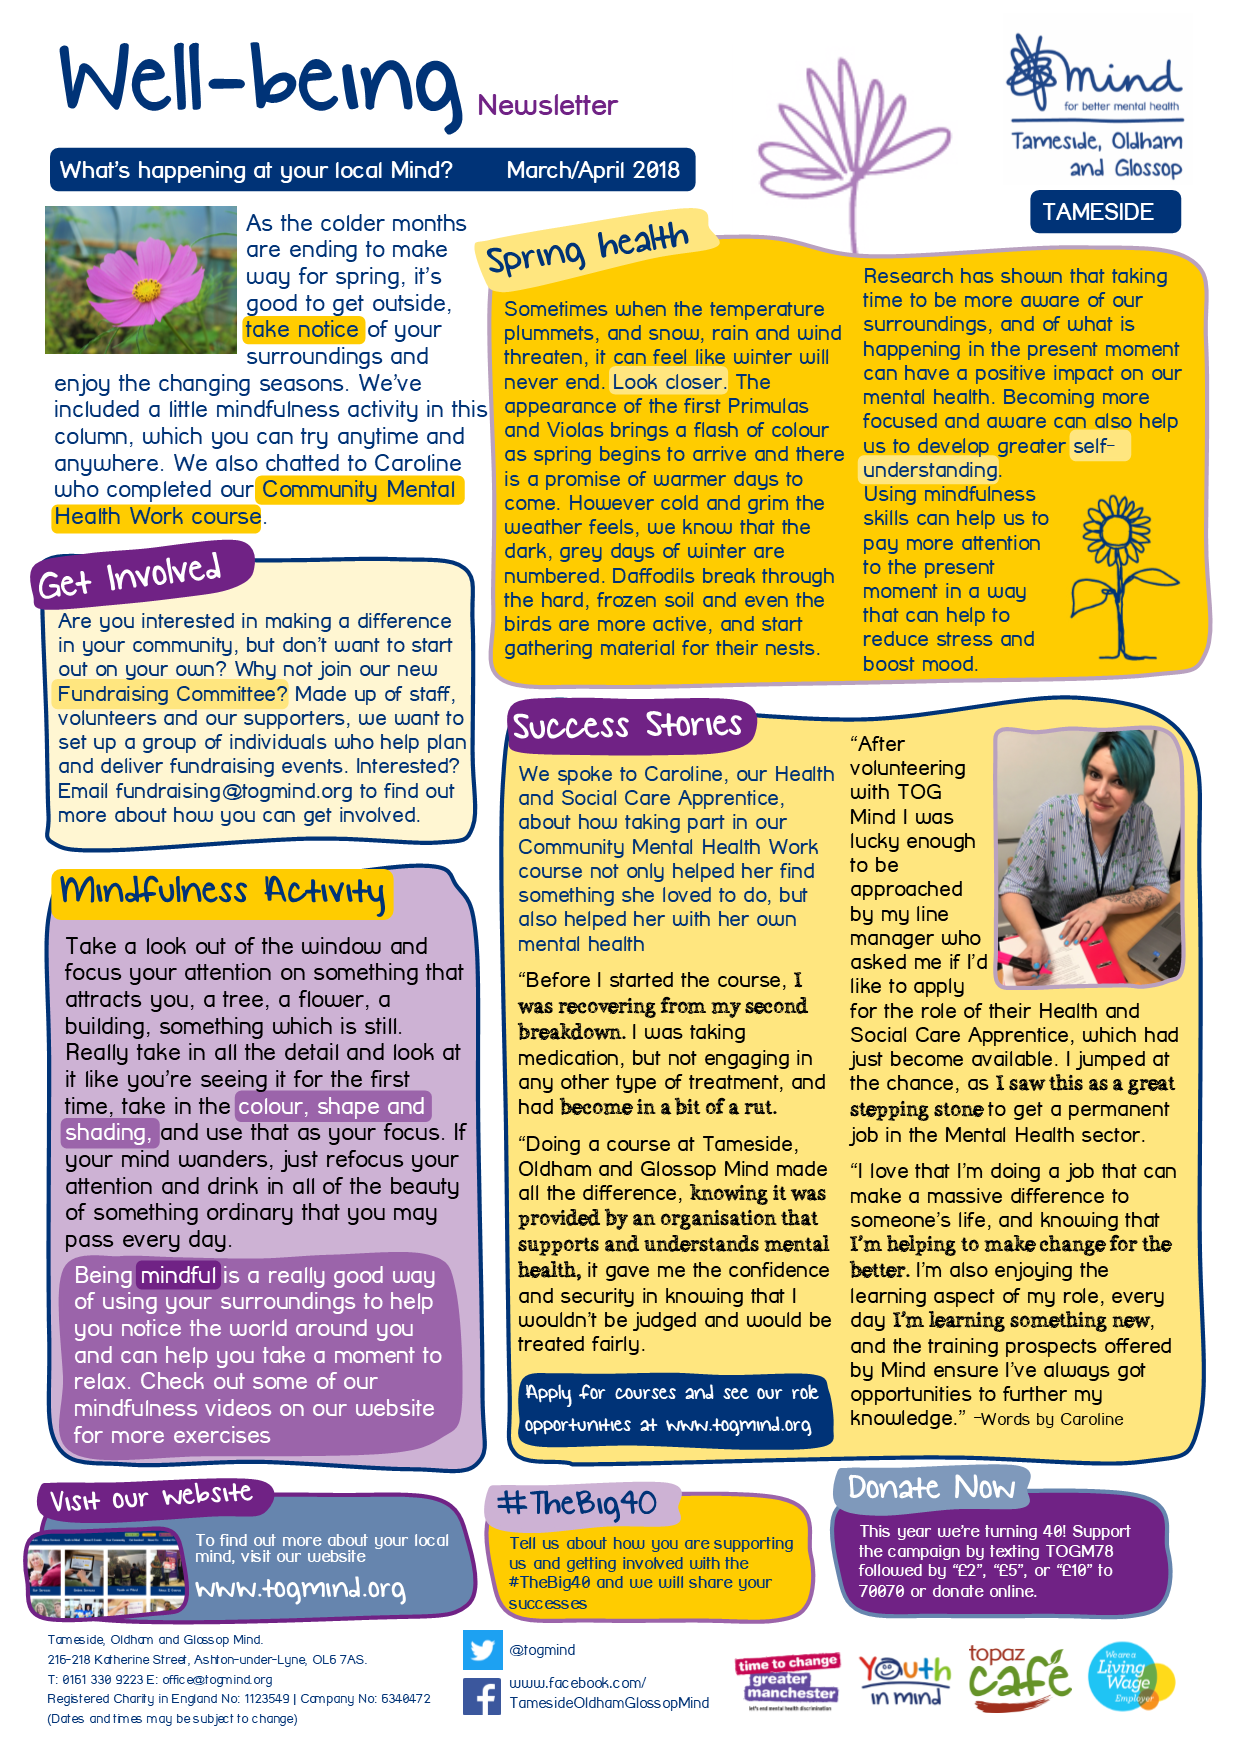 Wellbeing Column - Tameside - March / April